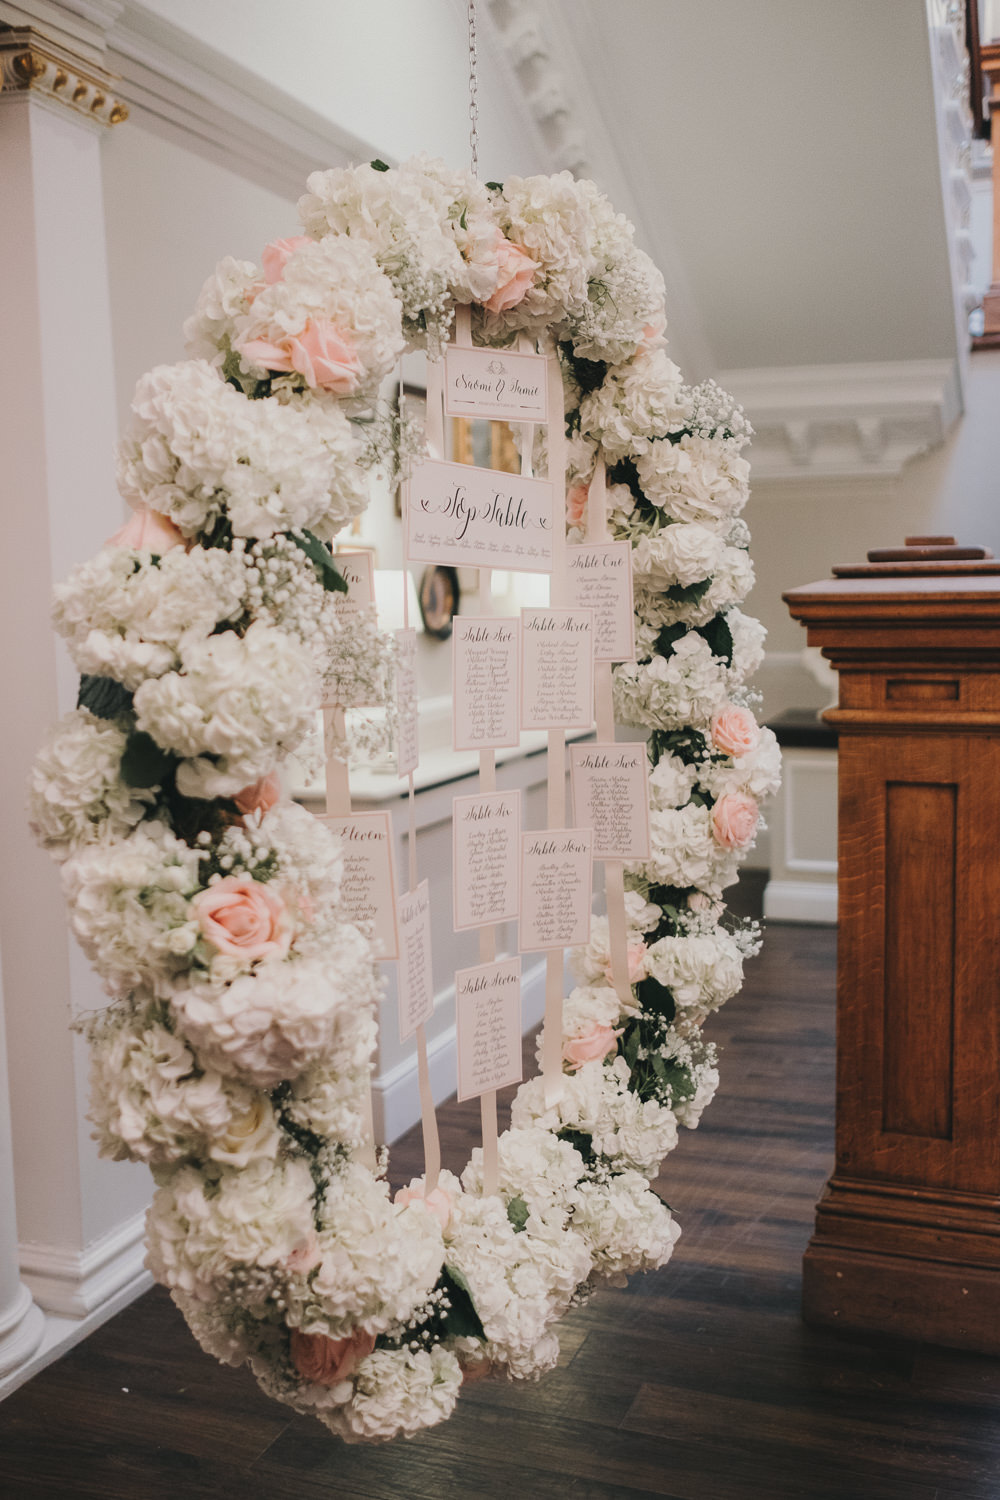 Dinner Reception Classic Elegant White Blush Flowers Round Table Plan Ribbon Stationery | Ashfield House Wedding Kate McCarthy Photography